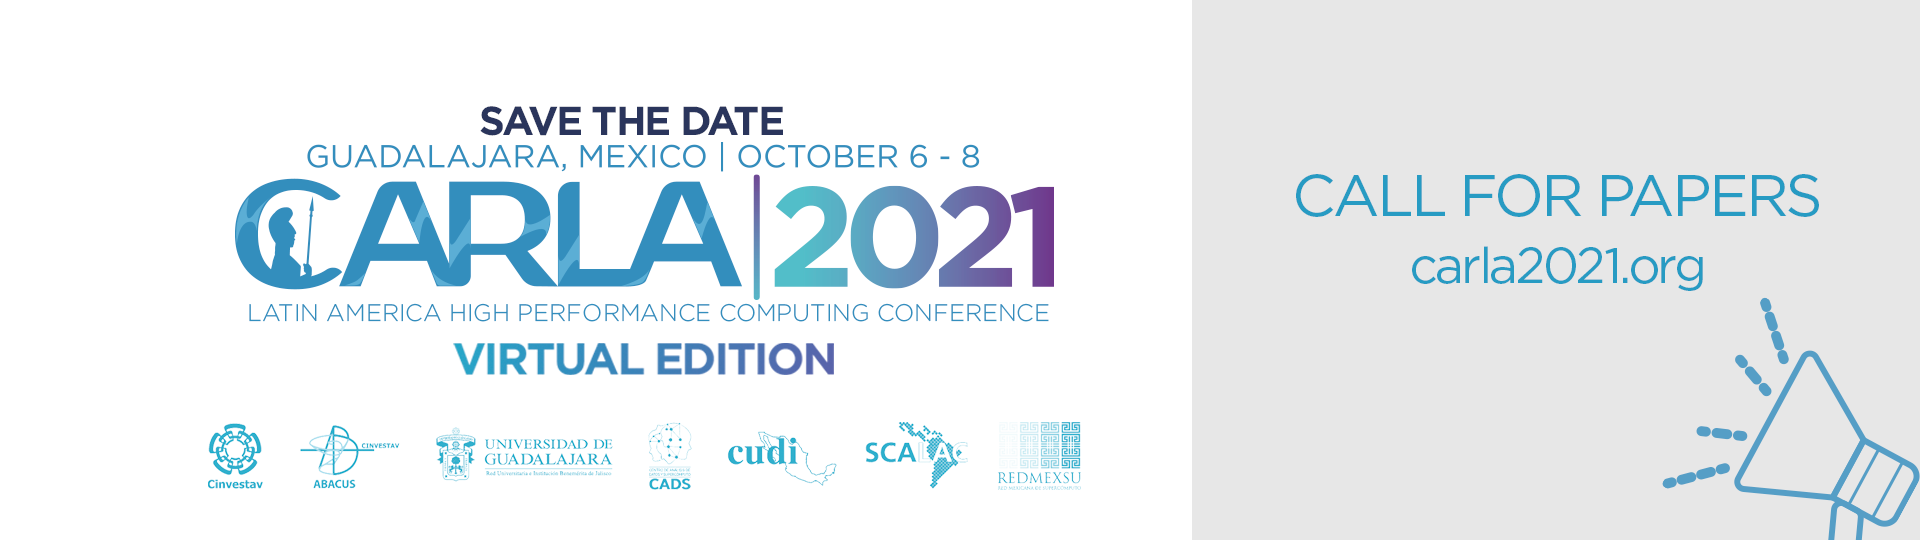 CARLA 2021 October 6 to 8 : CALL FOR PAPERS